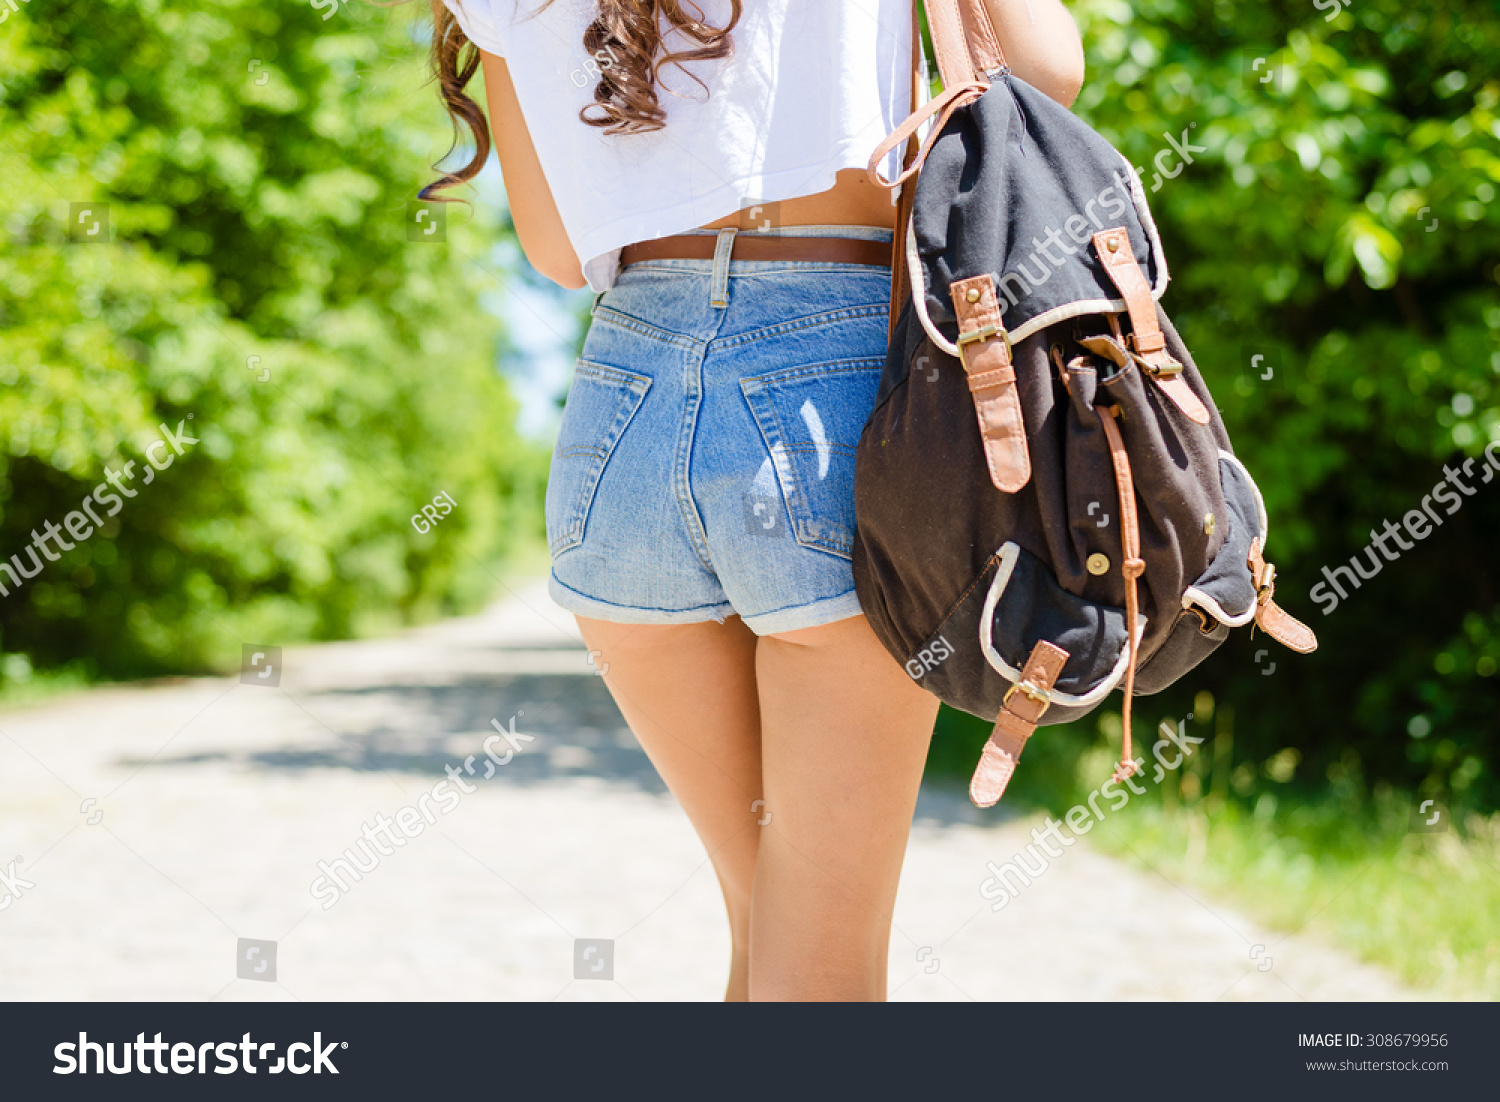 Young Sexy Girl Butts Jeans Shorts Stock Photo 308679956 - Shutterstock-3895